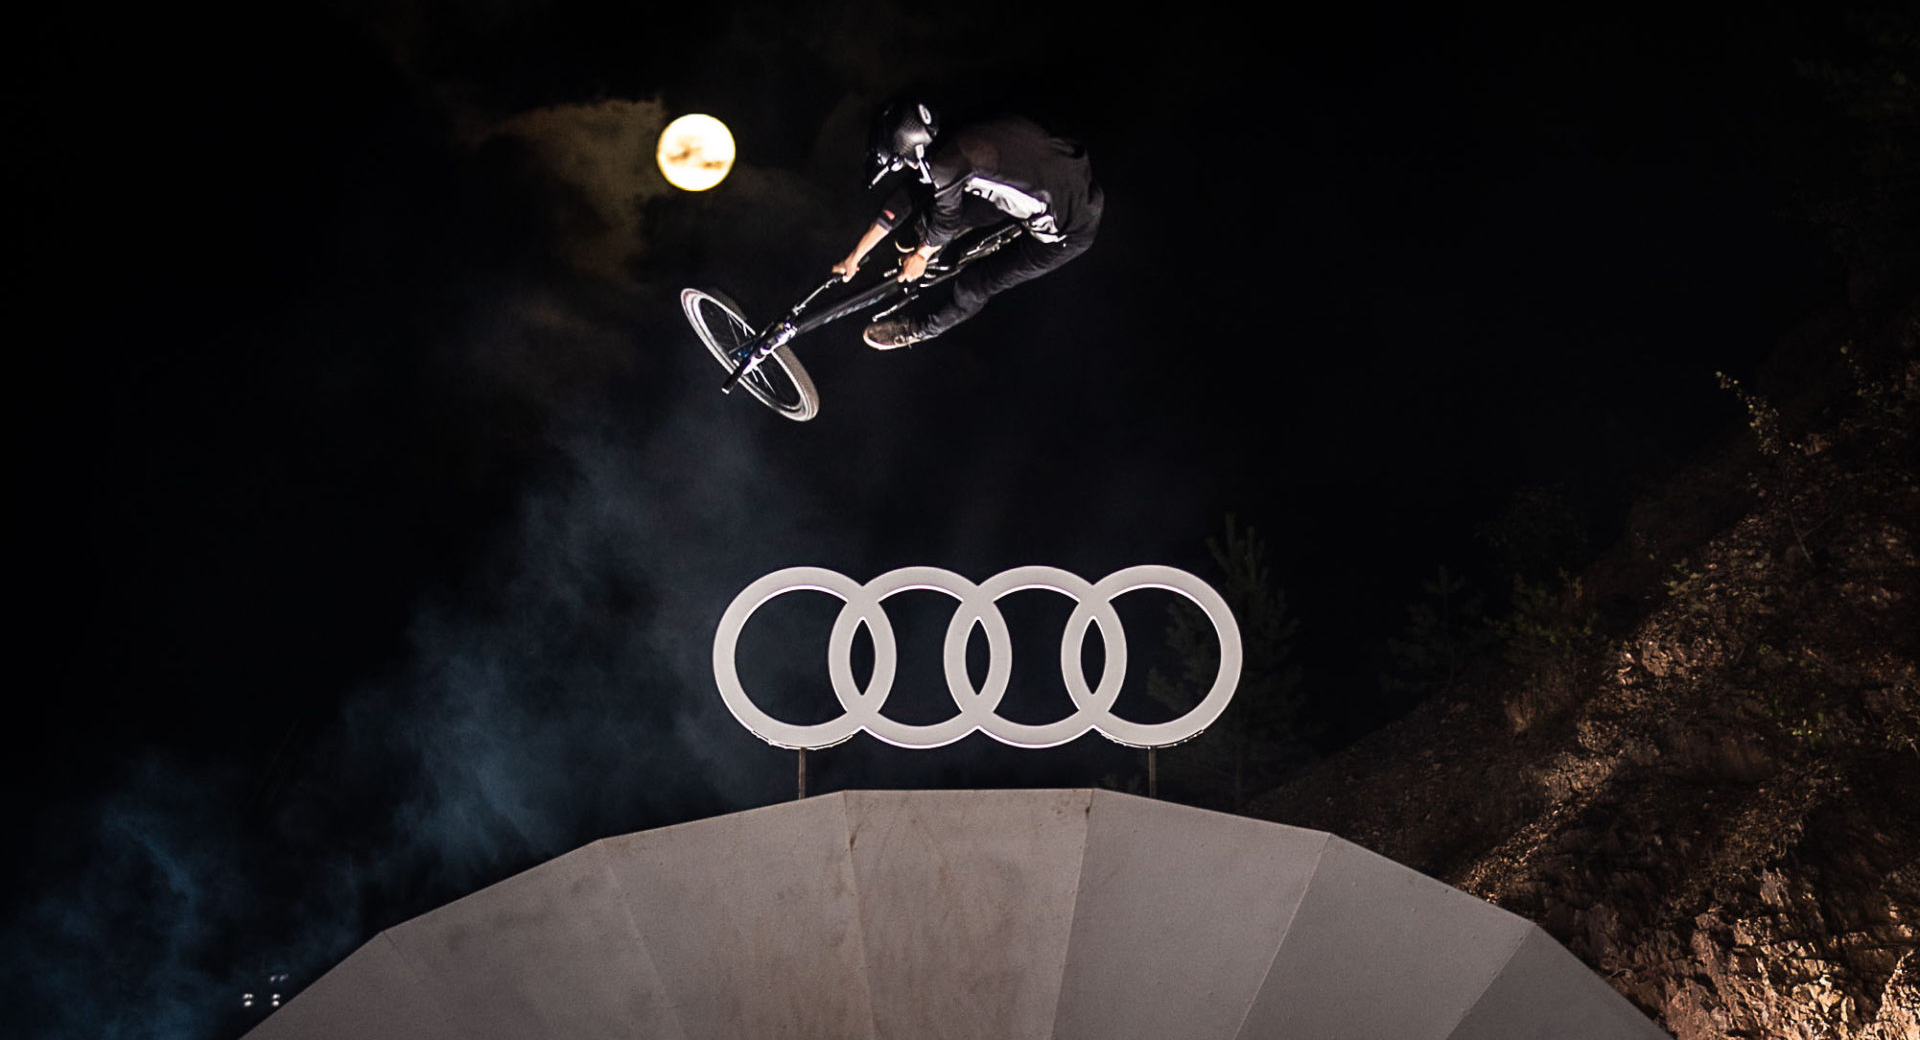 Audi Nines MTB 2019 Action Eventvideo Musikvideo Filmproduktion in Frankfurt Sprungschanze